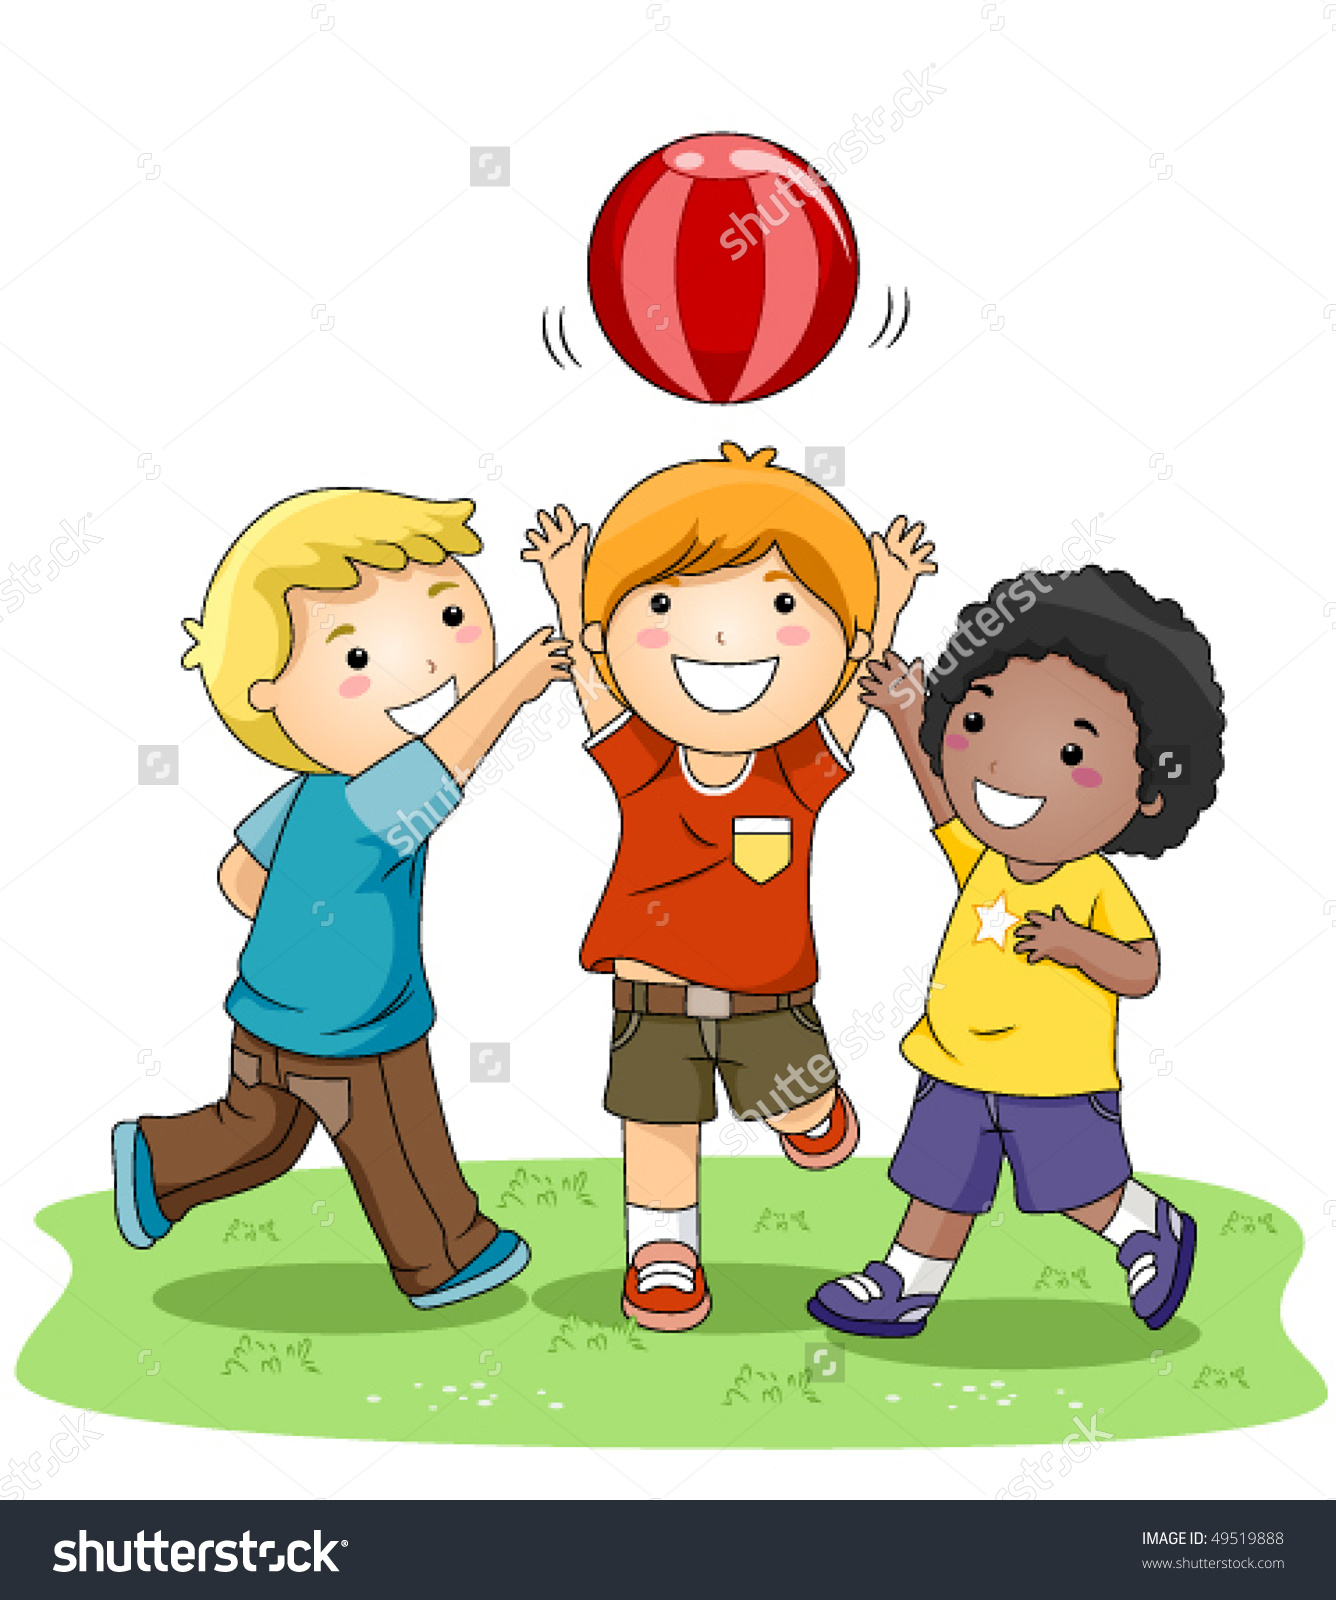 Kids Playing Ball Clipart.